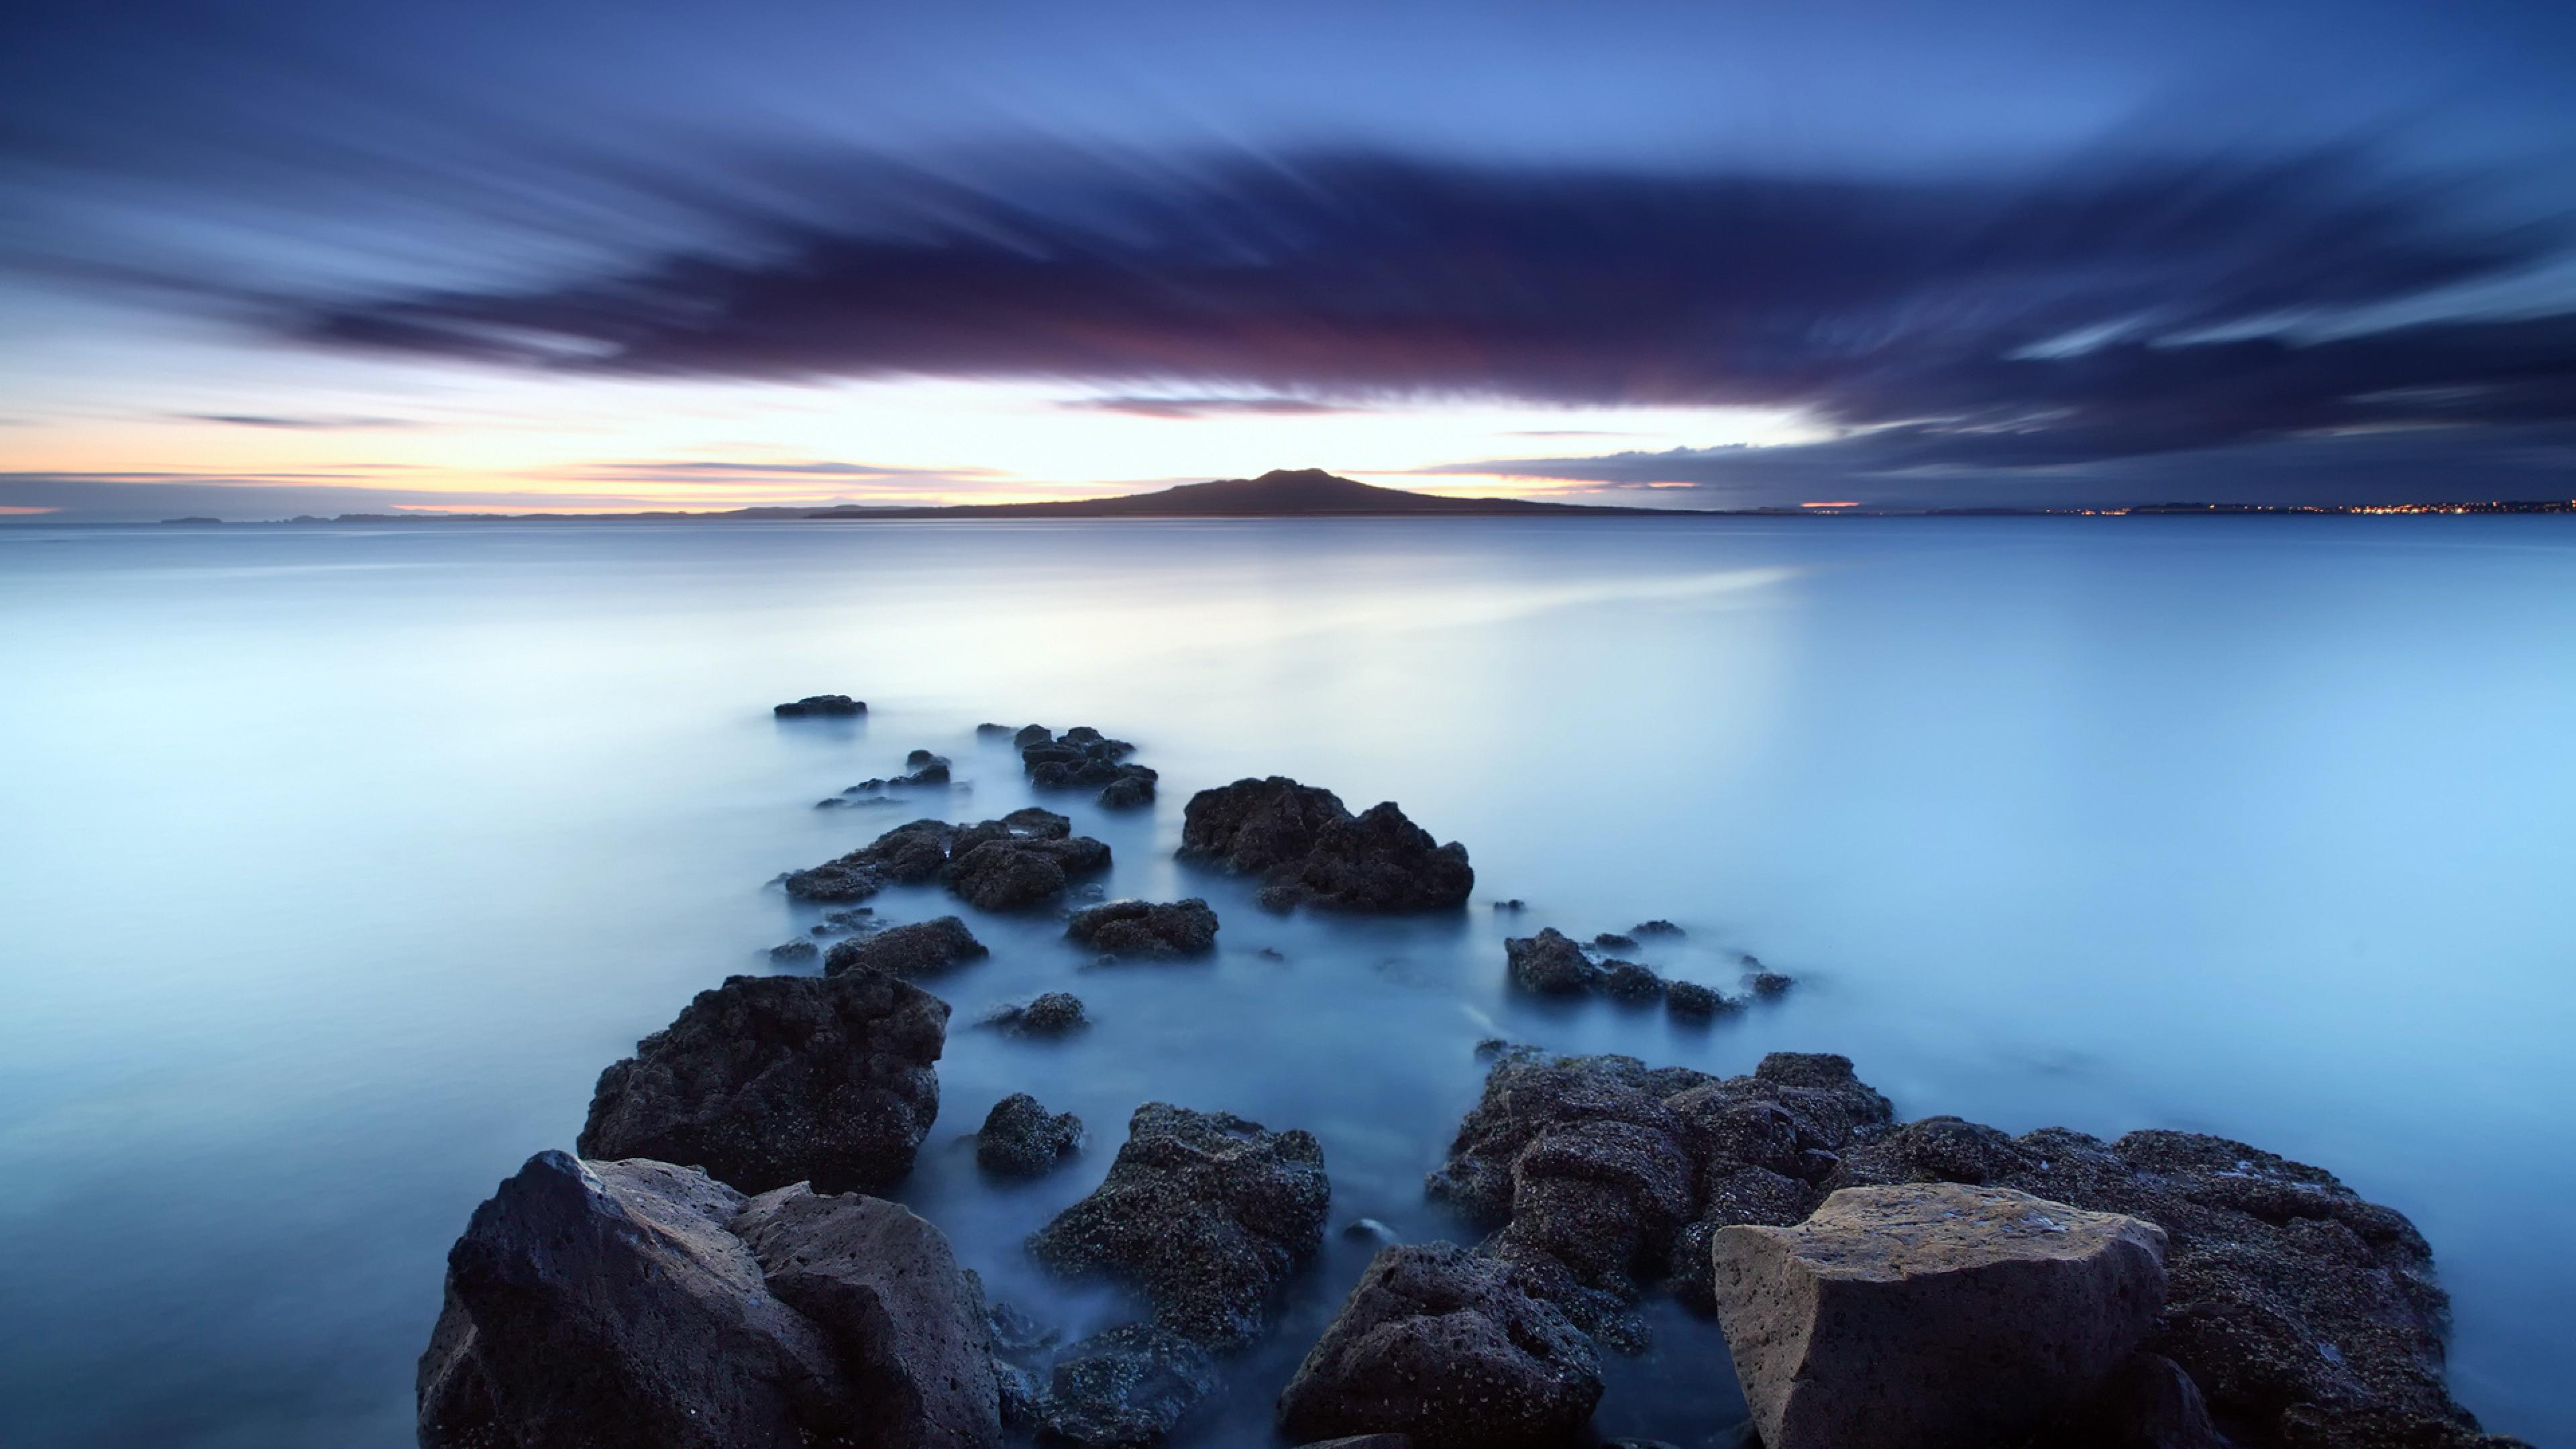 coast_stones_sea_water_sky_mountain_island_ultra_3840x2160_hd-wallpaper-149153